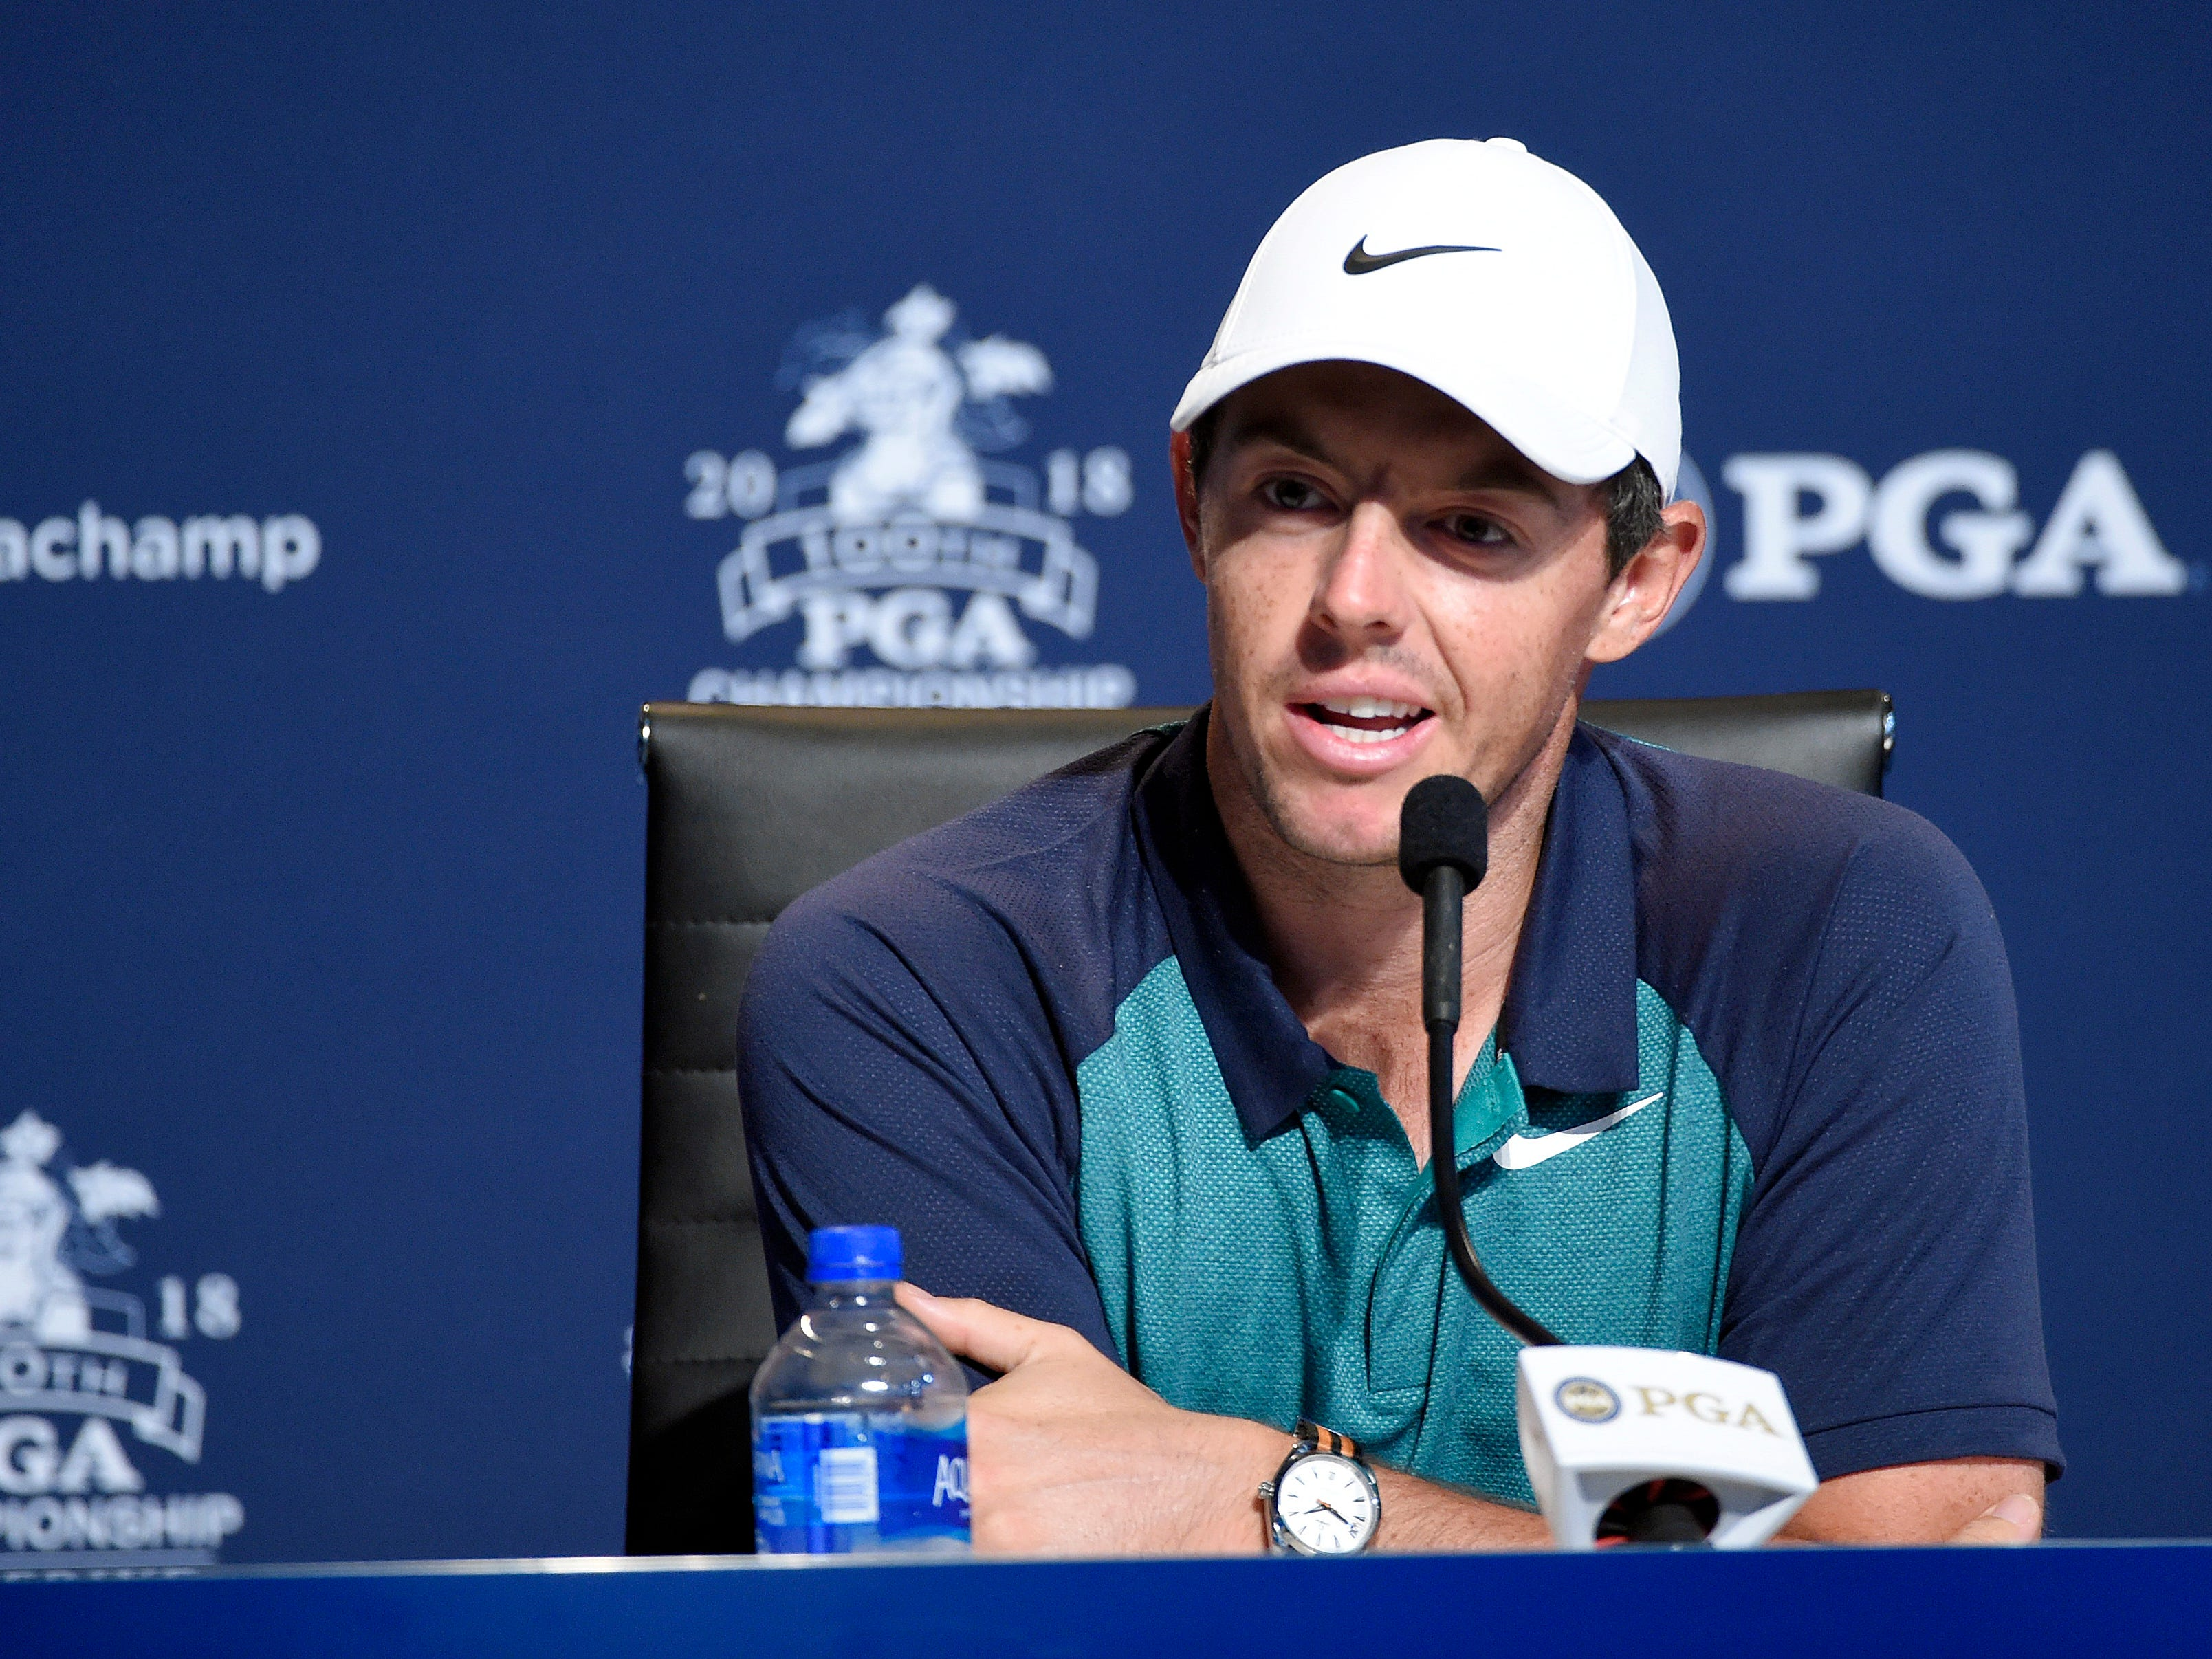 Rory McIlroy addresses the media during a news conference.